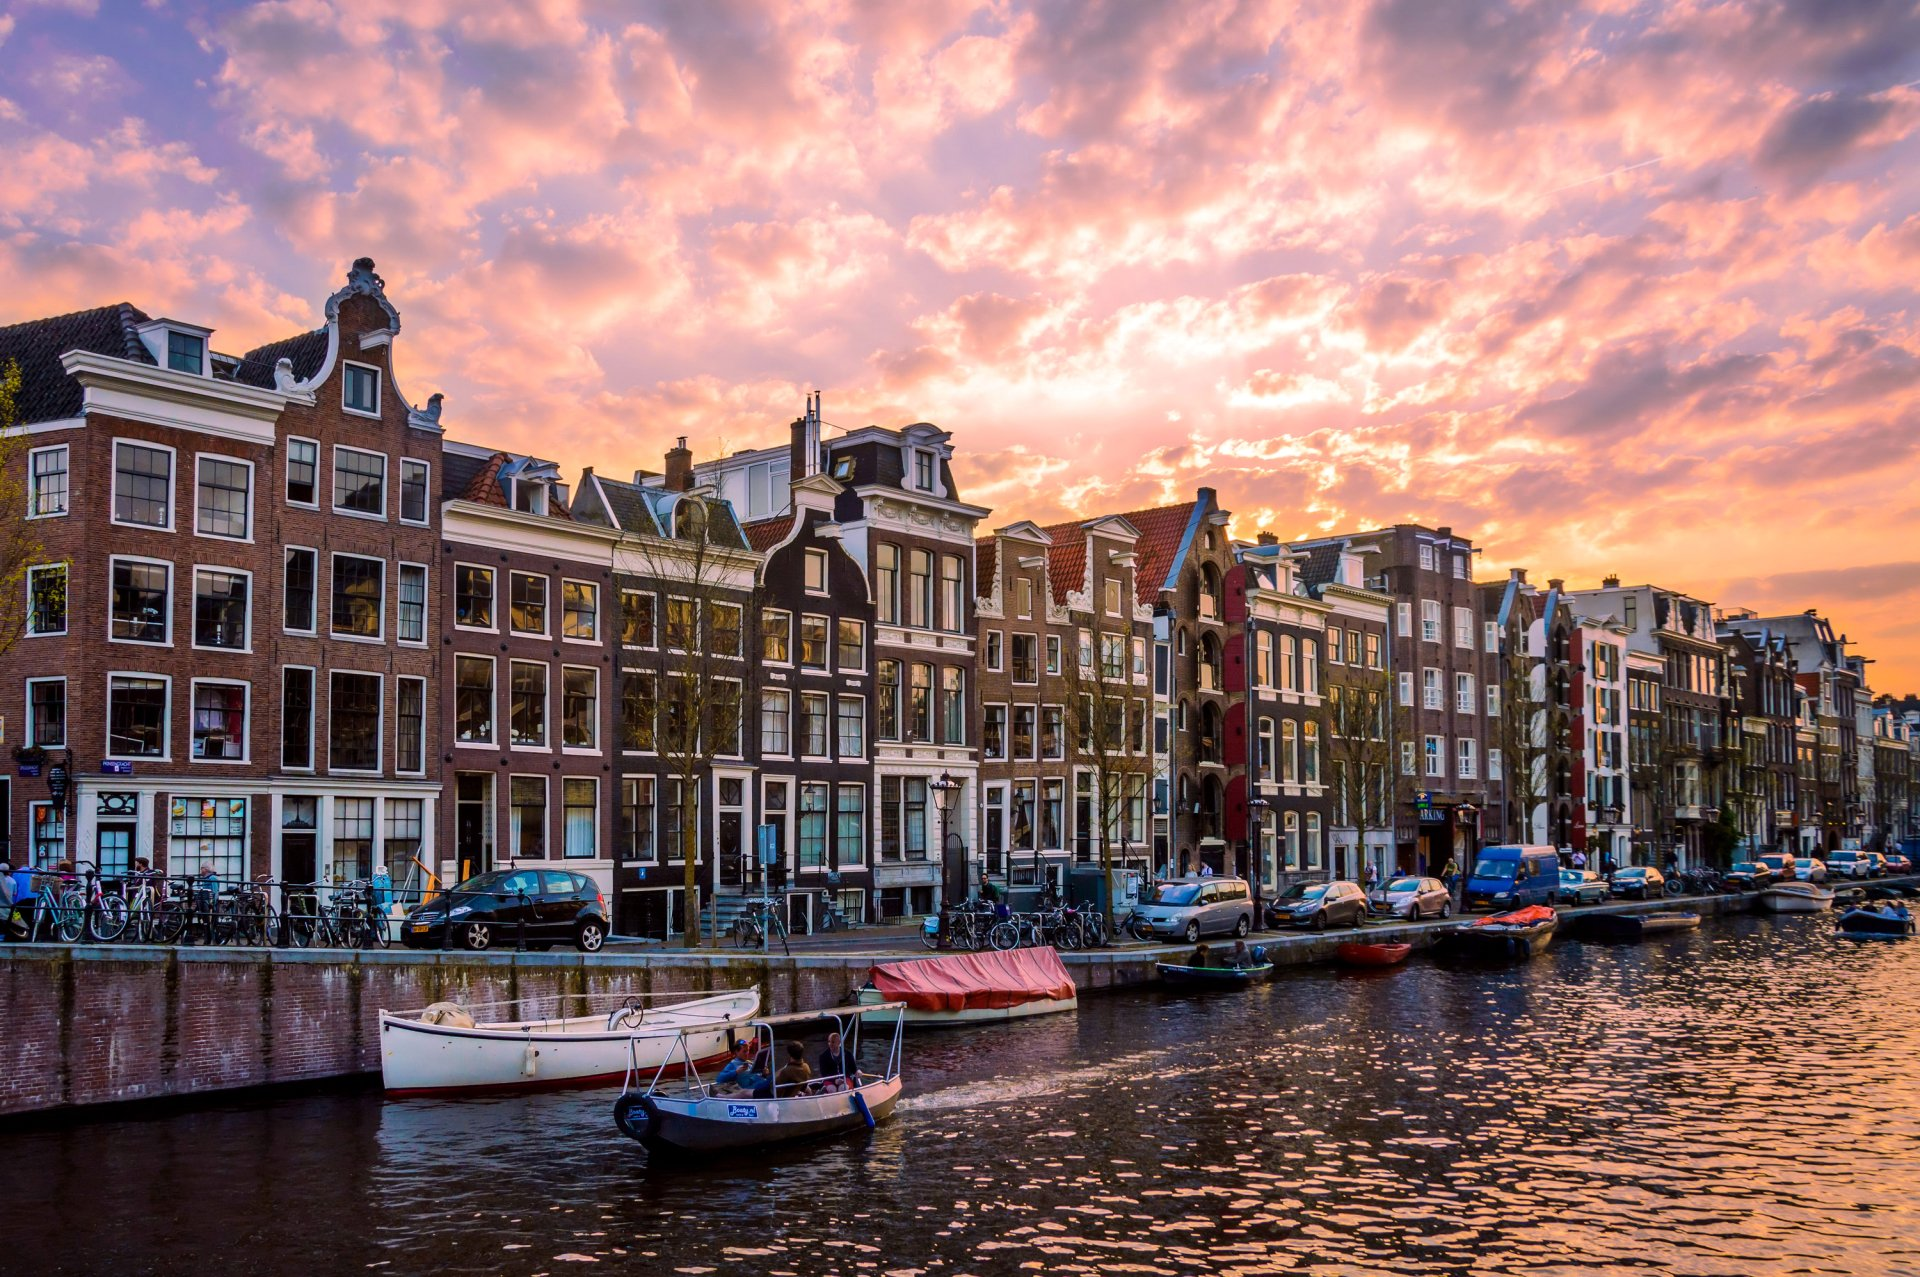 Man Made - Amsterdam  House Netherlands Canal Boat Wallpaper